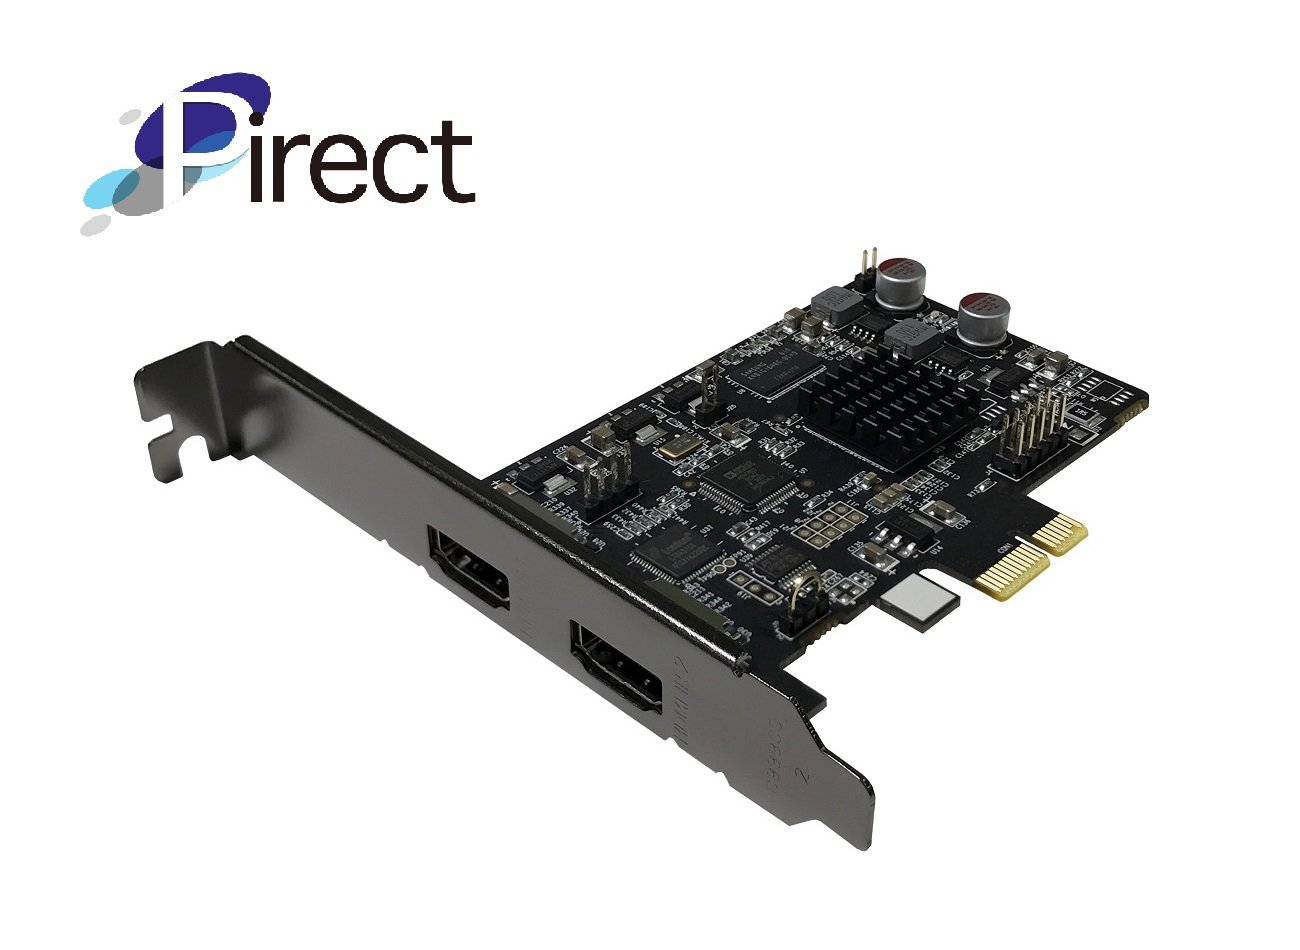 Pirect Uldra-P60 Video Capture Card, True 60fps Recording and Streaming @1080p, Ultra Low Latency Preview, H.264/AVI Software encoding, PCI-Express x1 (Pirect Uldra-P60)